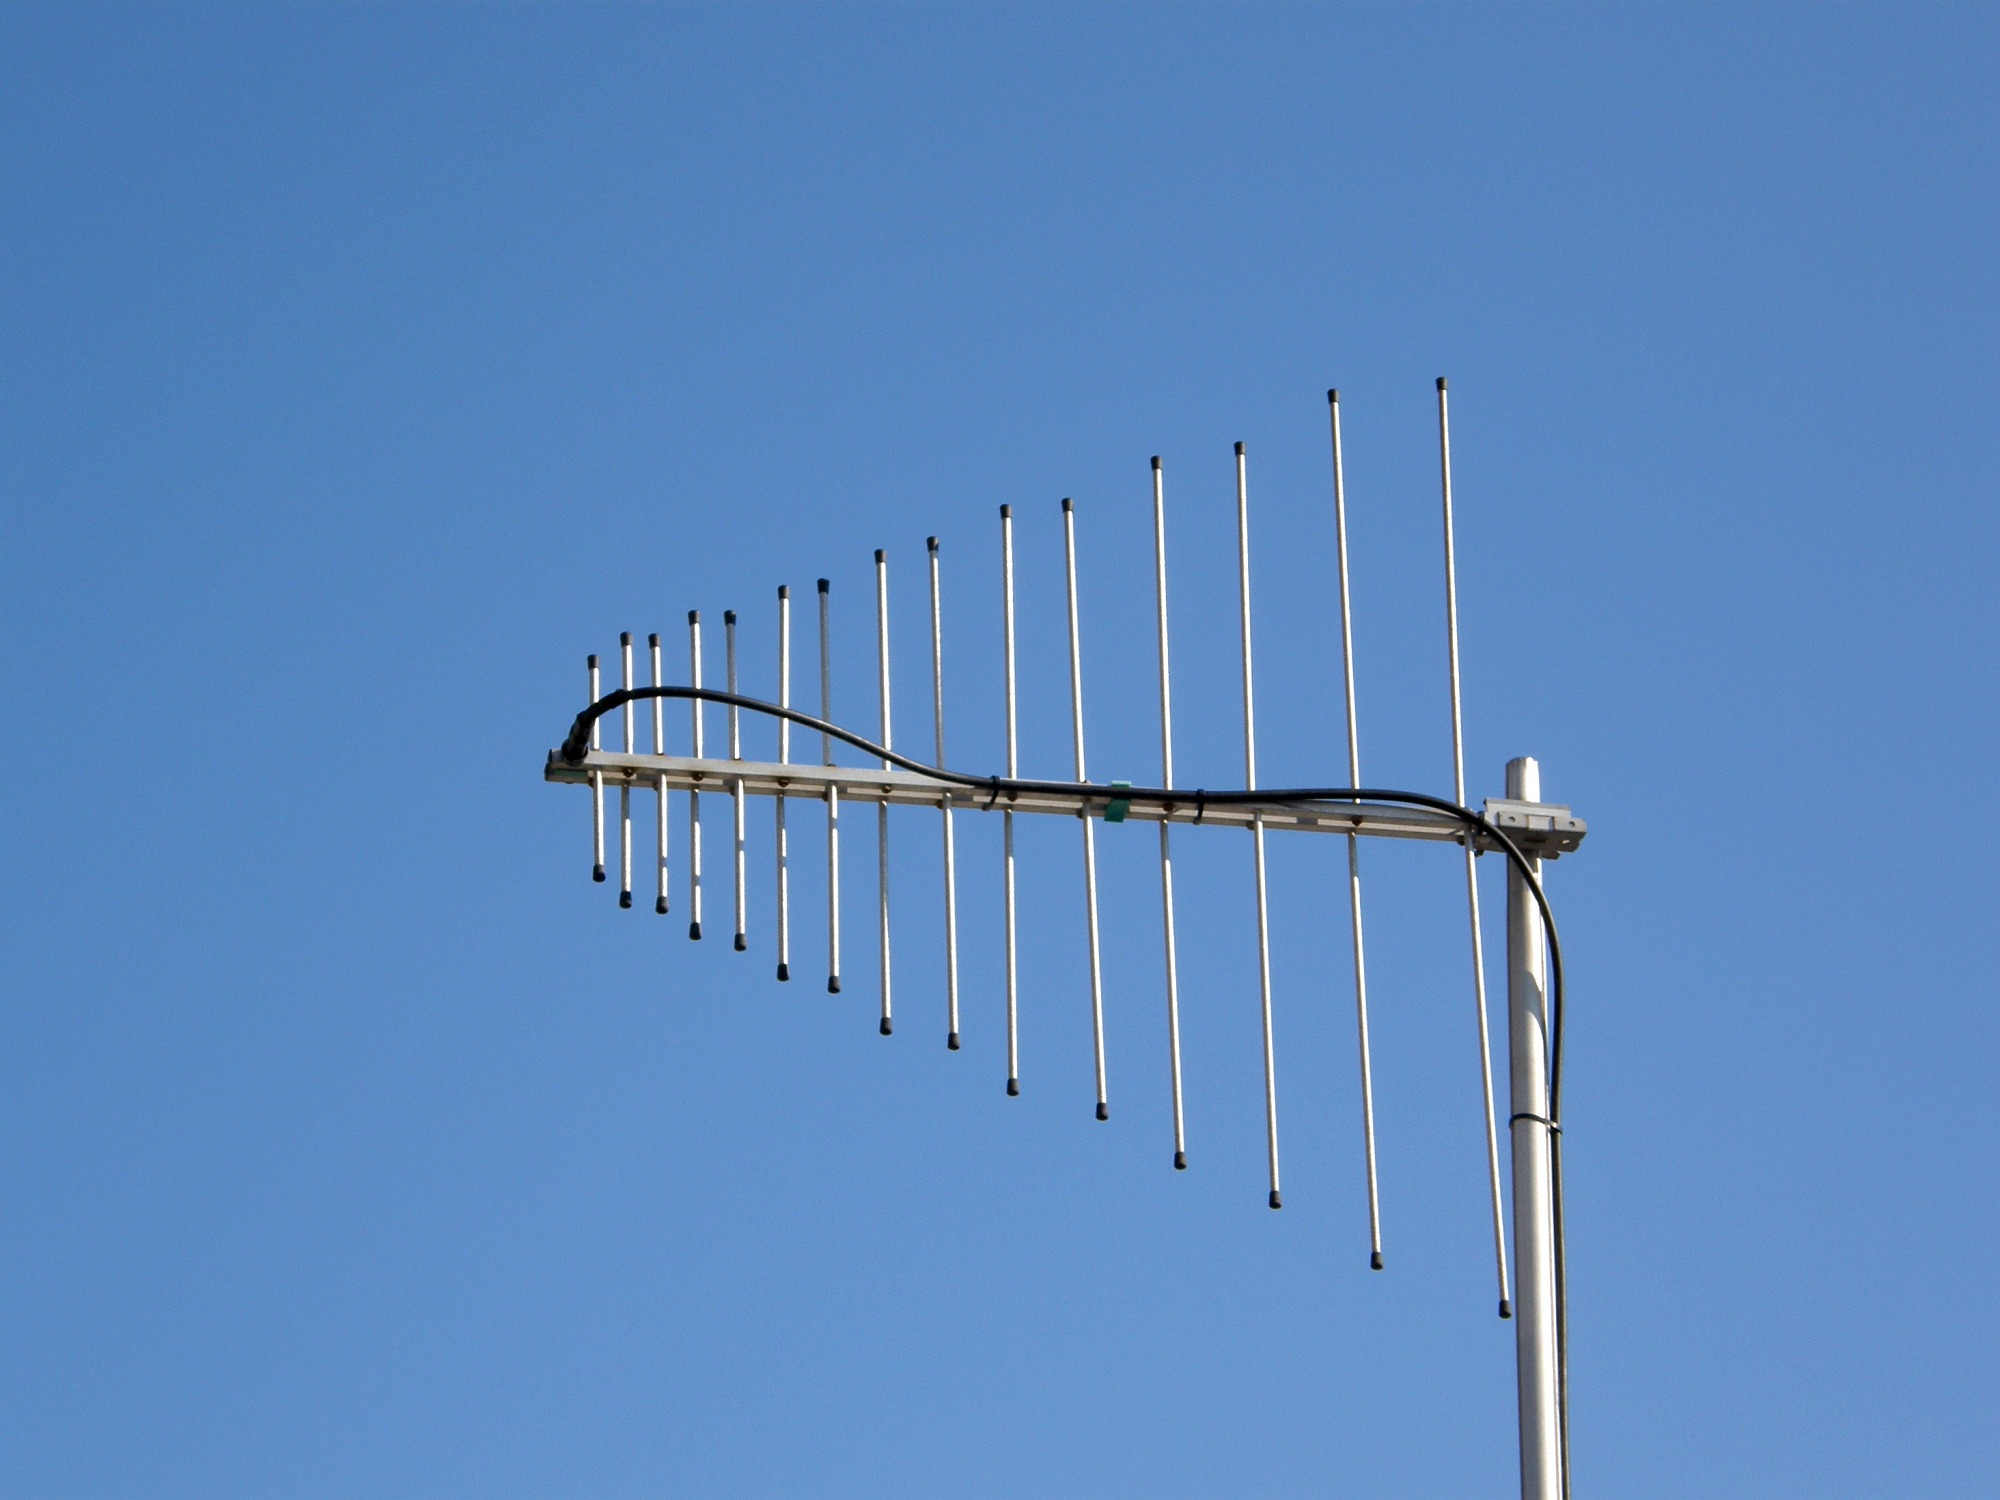 File VHF UHF LP Antenna further I  Ic F1000 Vhf Ic F2000 Uhf further Nautica 13 Rib 9098 also 154560 X Turbo 60 Antenna Cb Auto E Camion C871 besides 220 Mhz Ground Plane Antenna. on all type of vhf radio